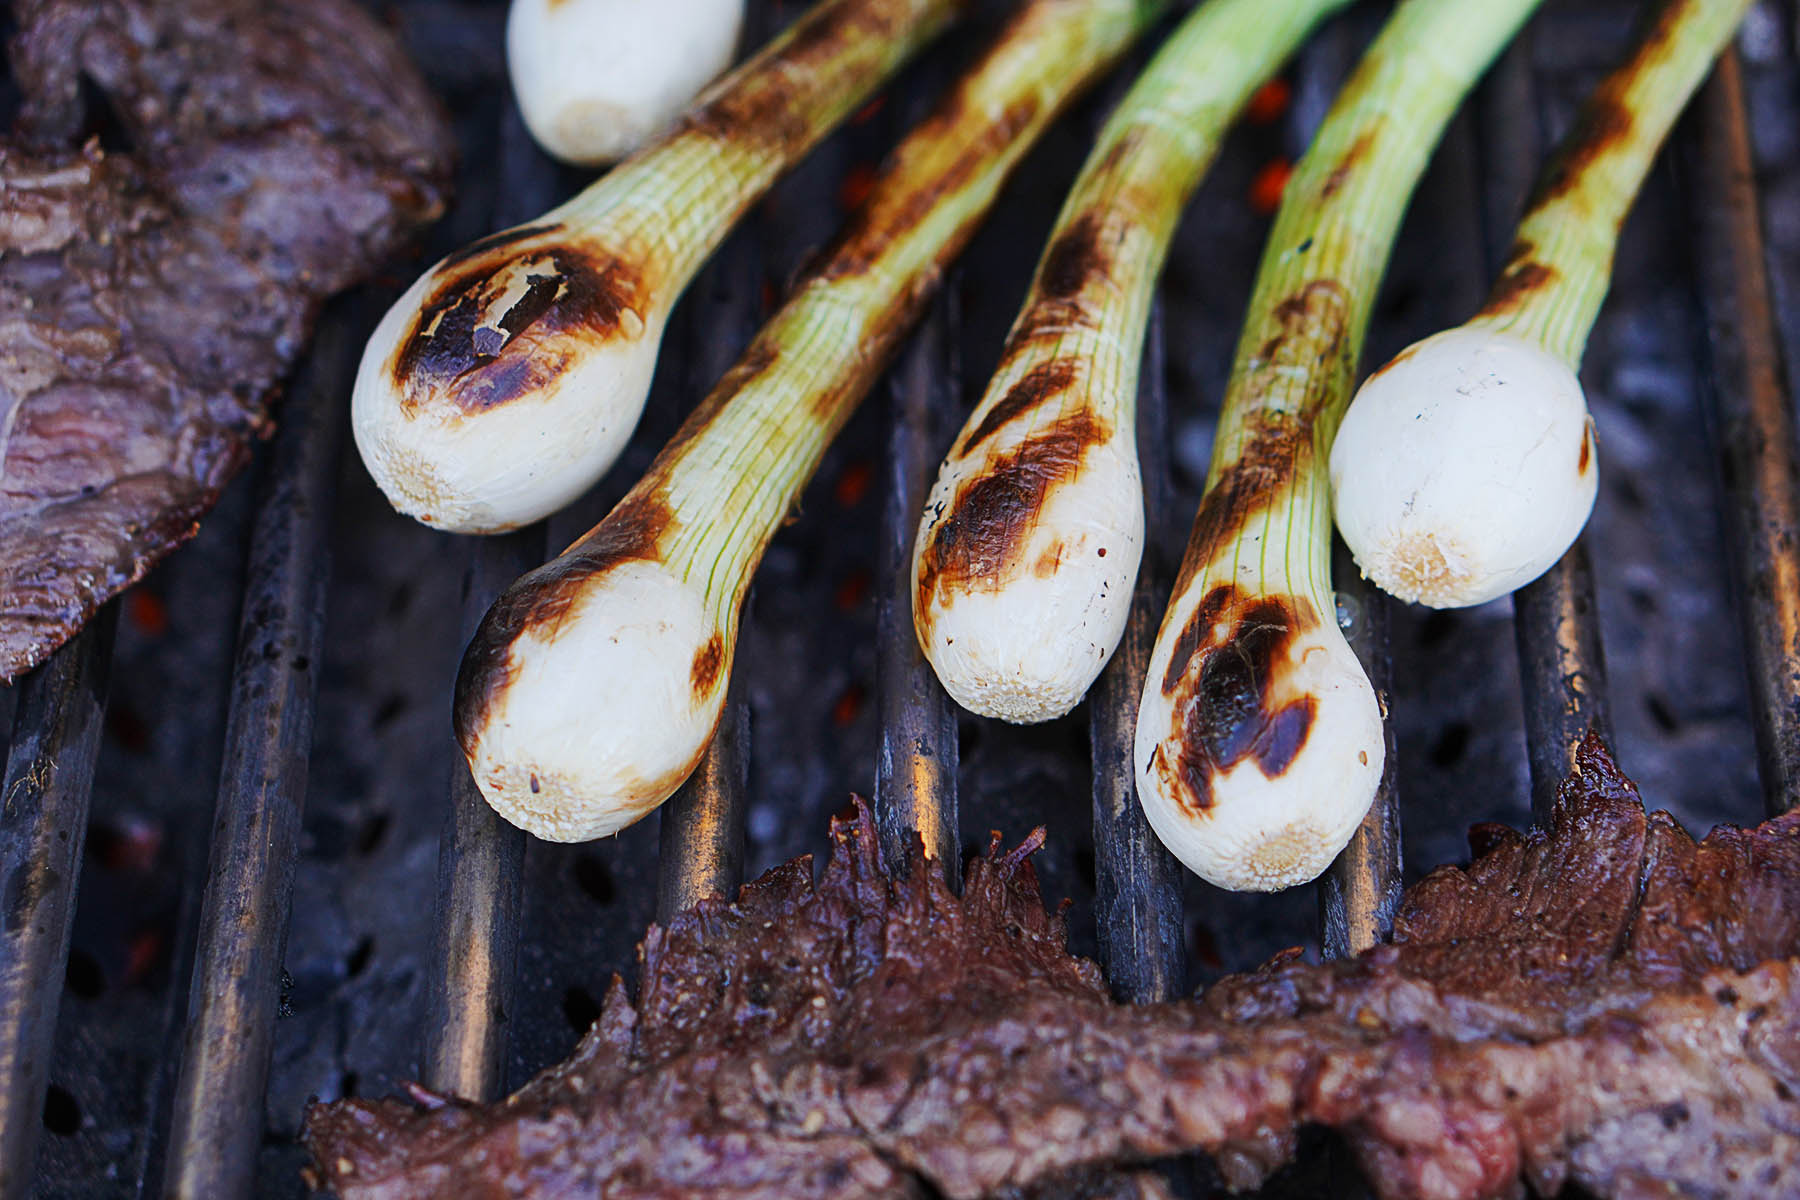 Green onions on a grill with carne asada on the side